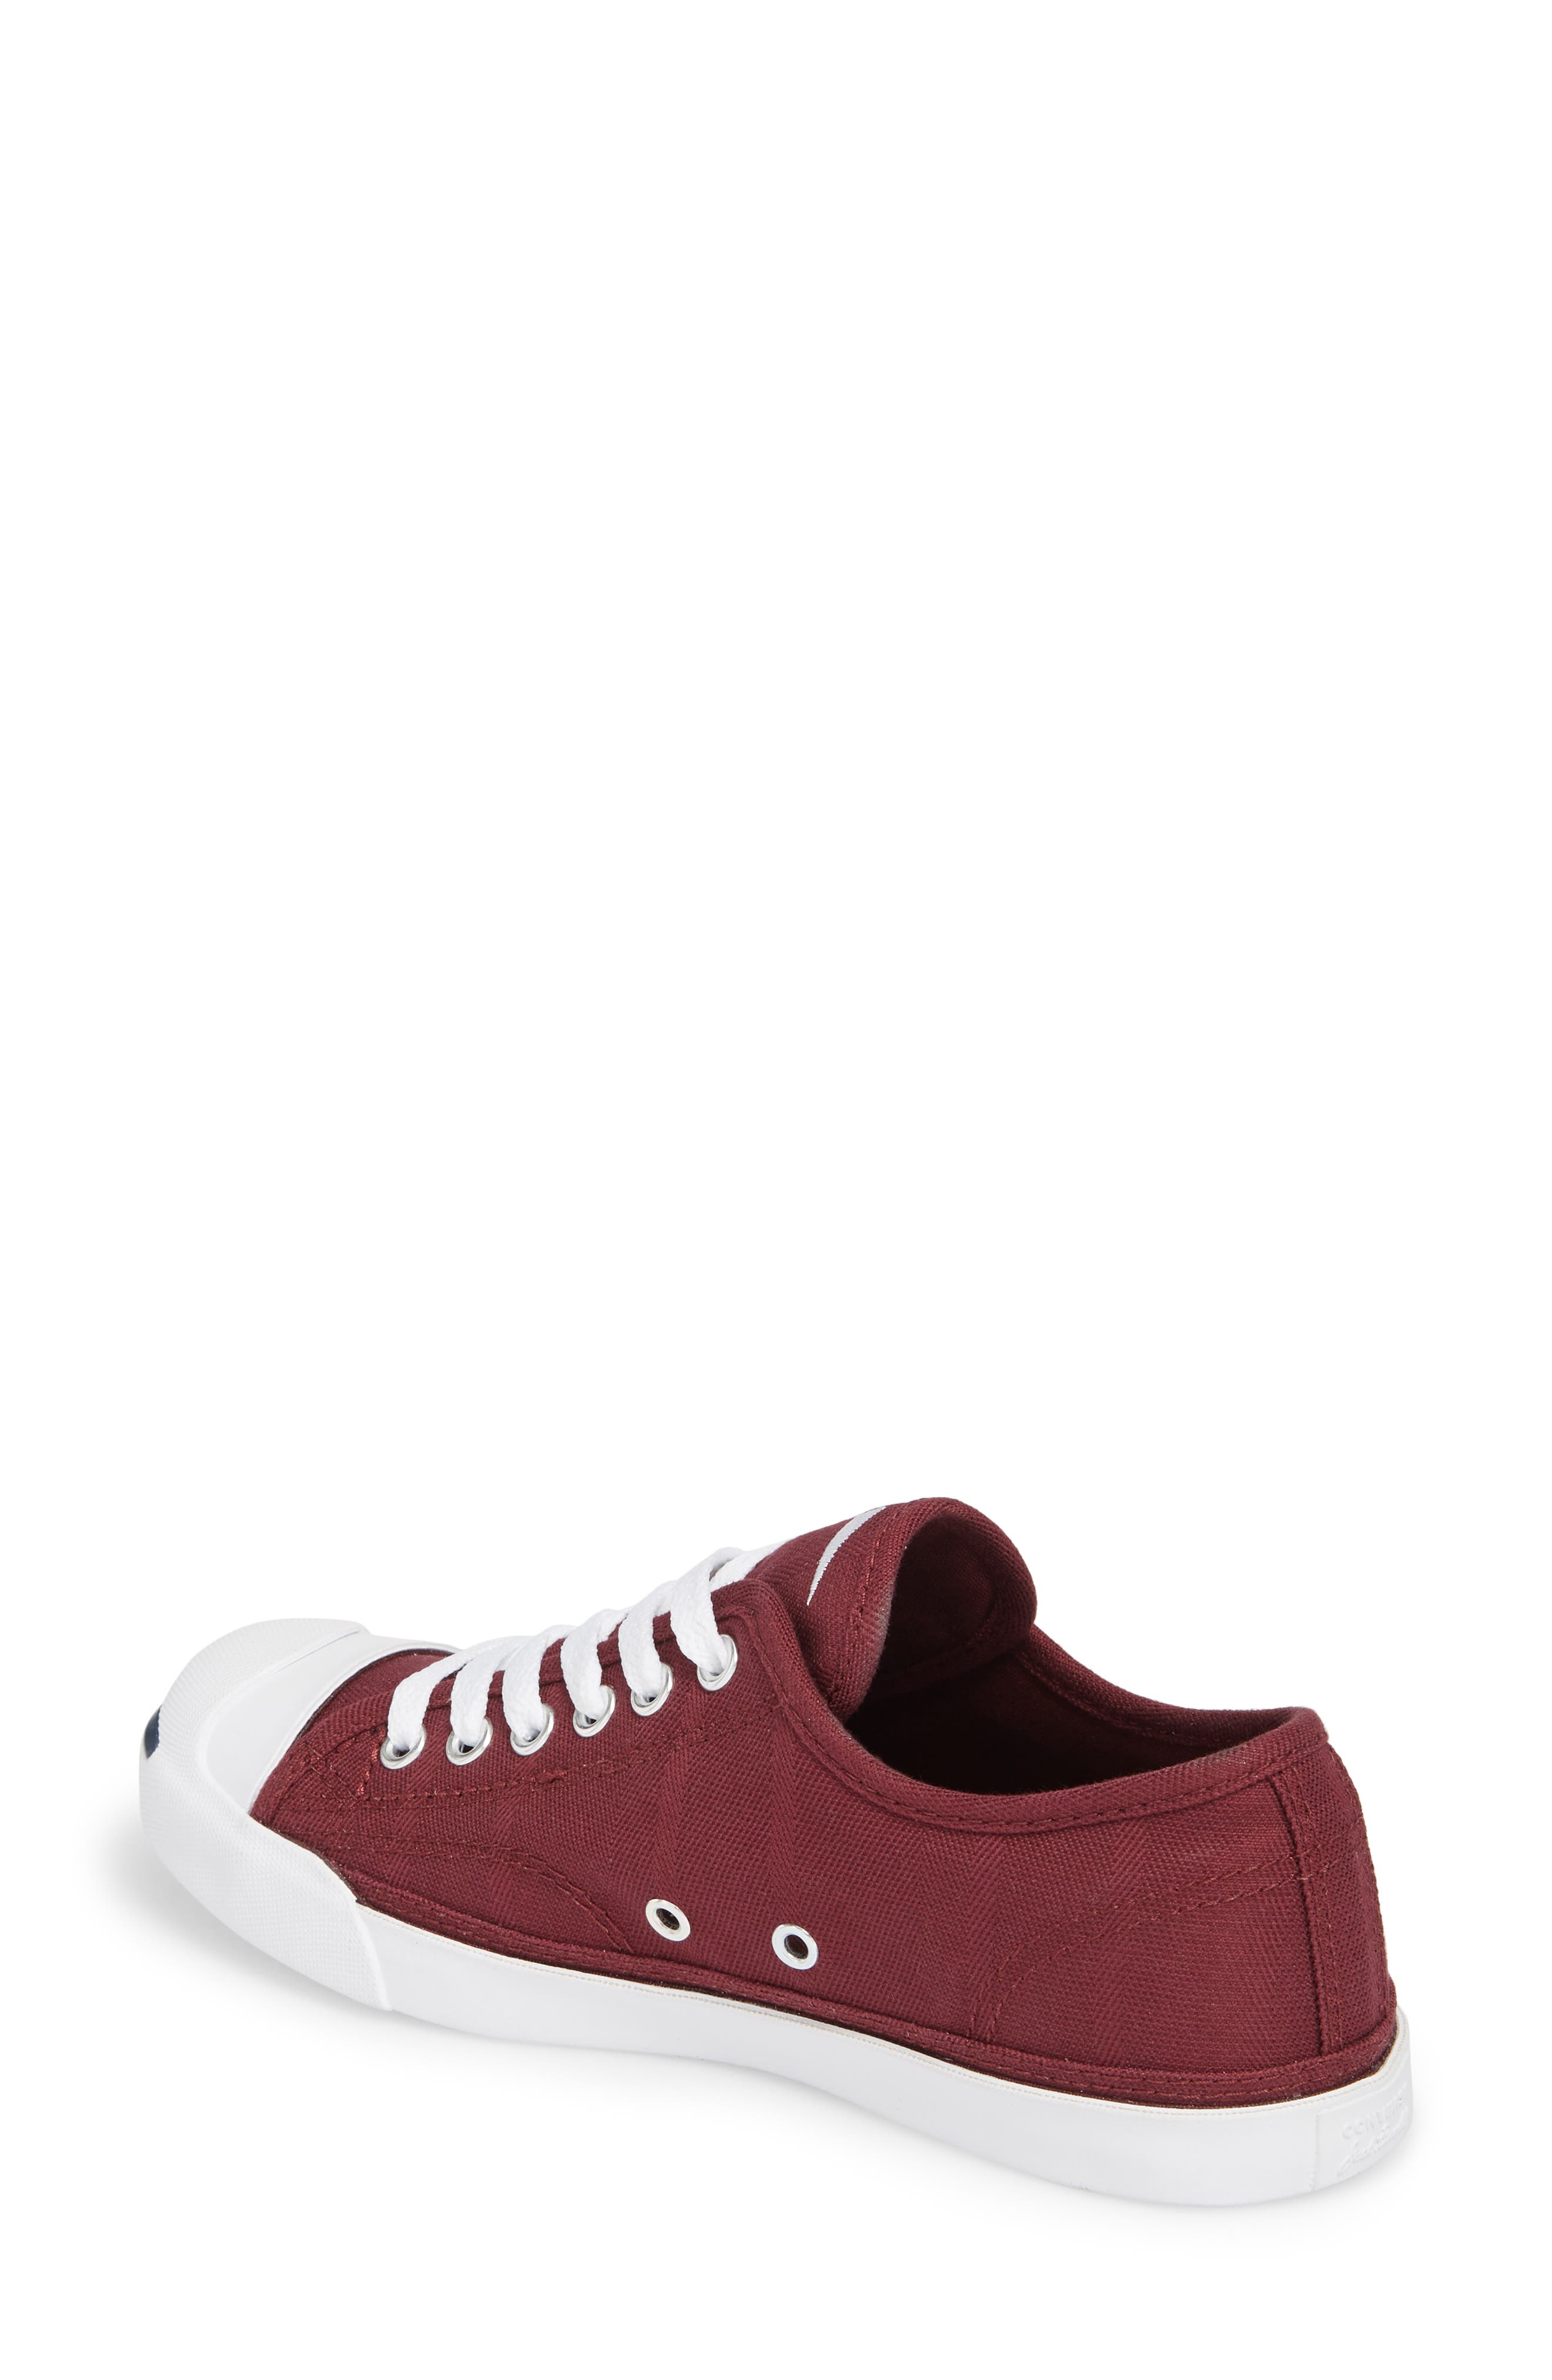 ,                             Jack Purcell Low Top Sneaker,                             Alternate thumbnail 56, color,                             930